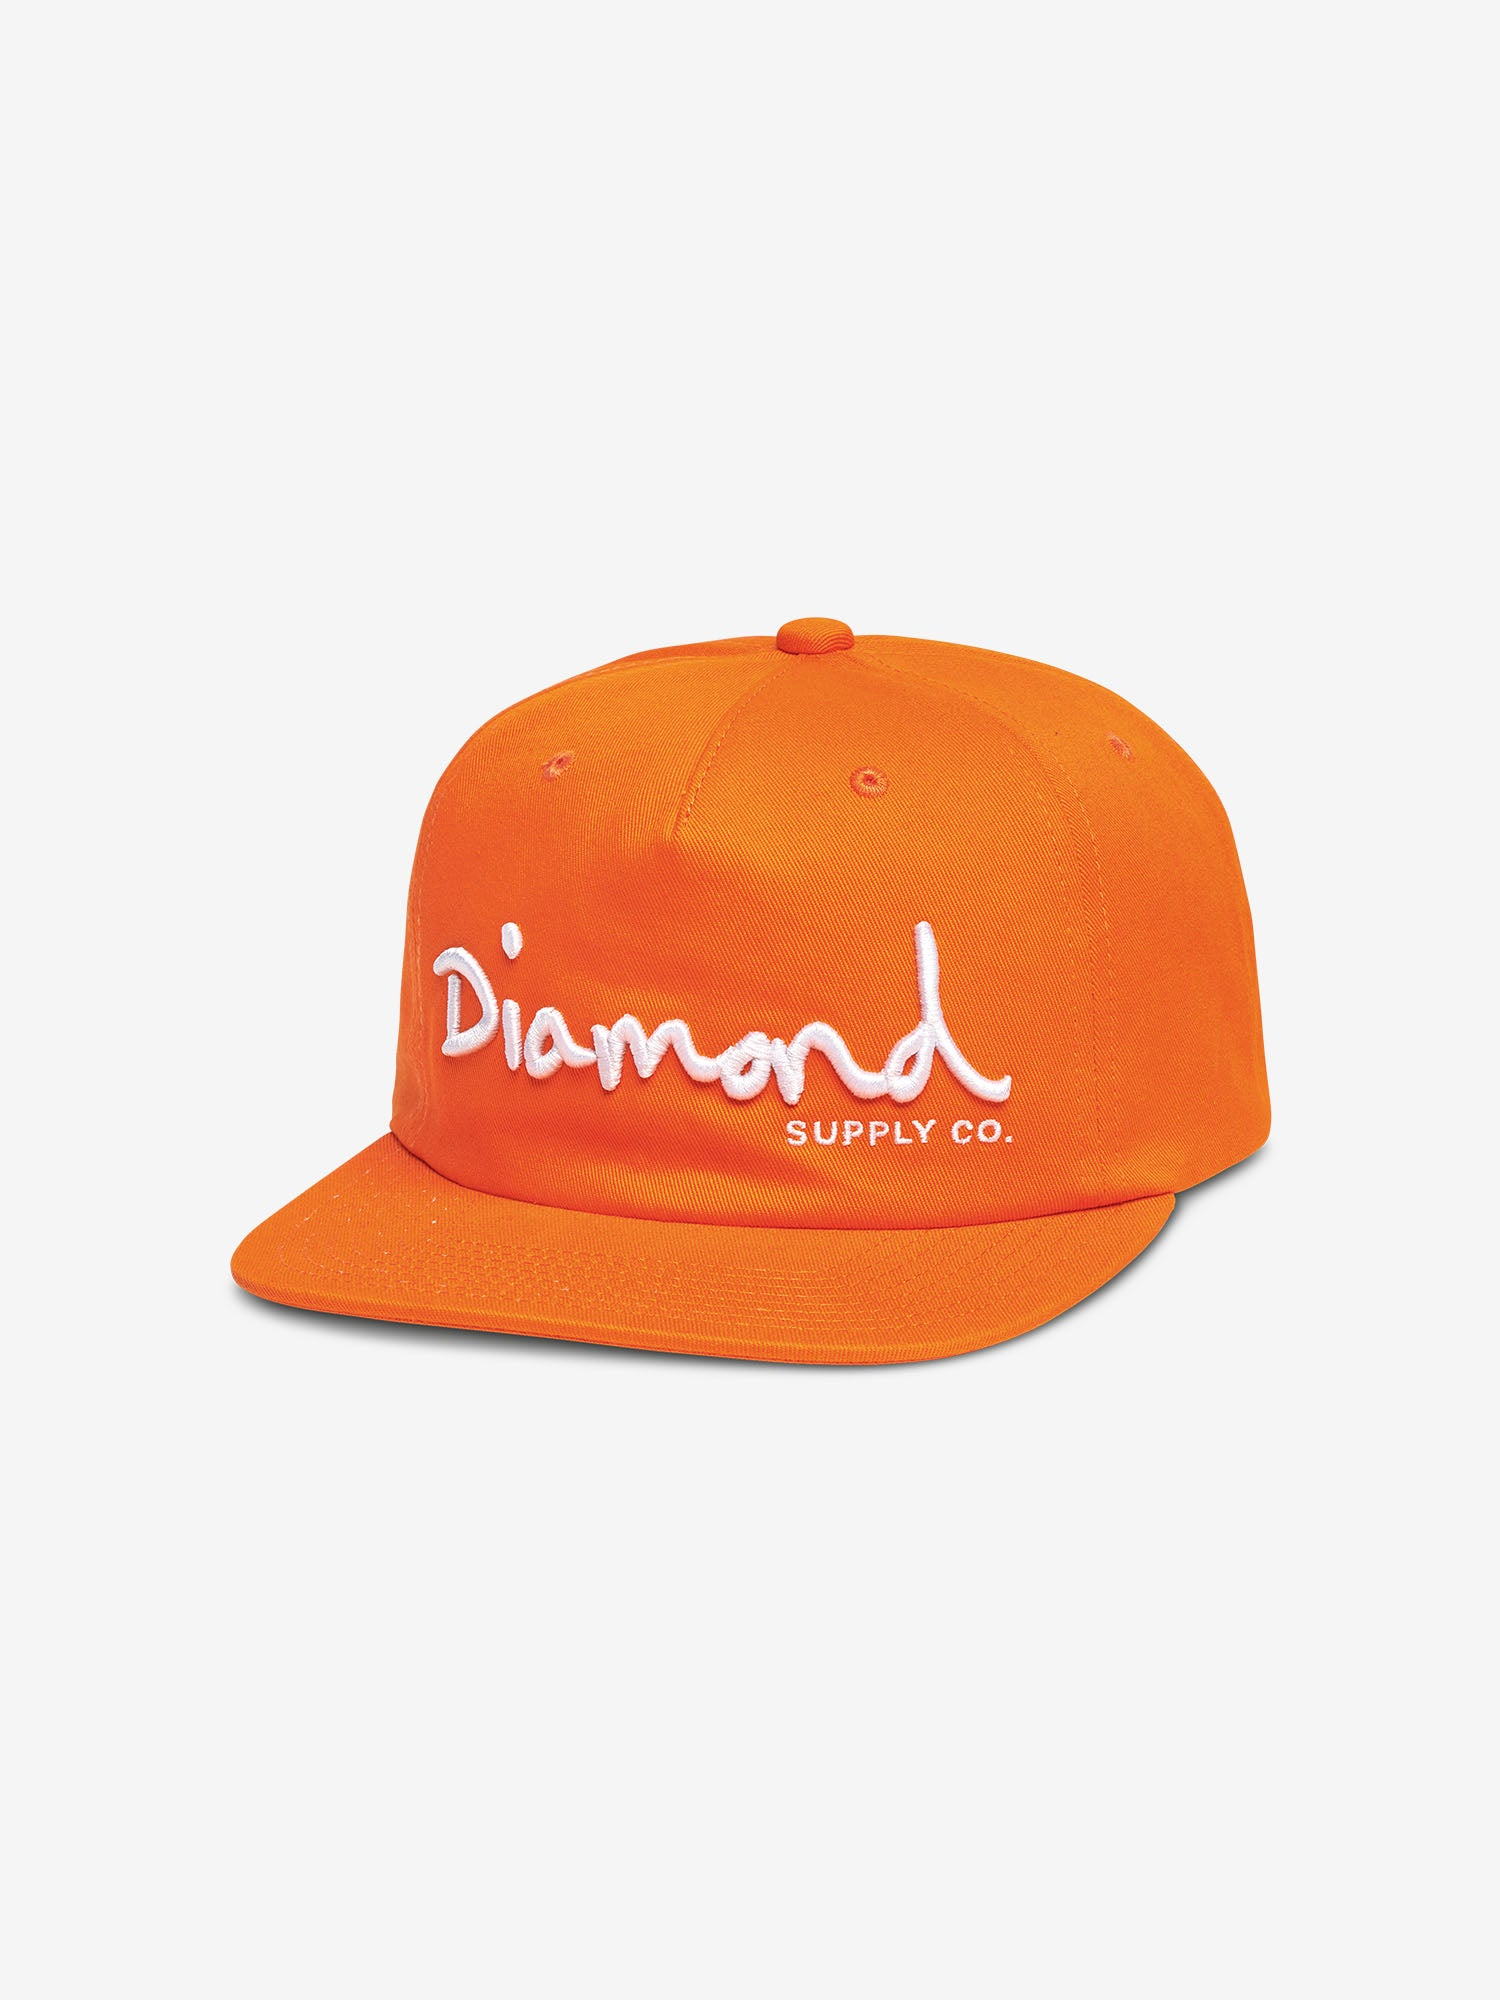 Diamond Supply Co. OG SCRIPT UNSTRUCTURED SNAPBACK FALL 2018 79d7cca44595